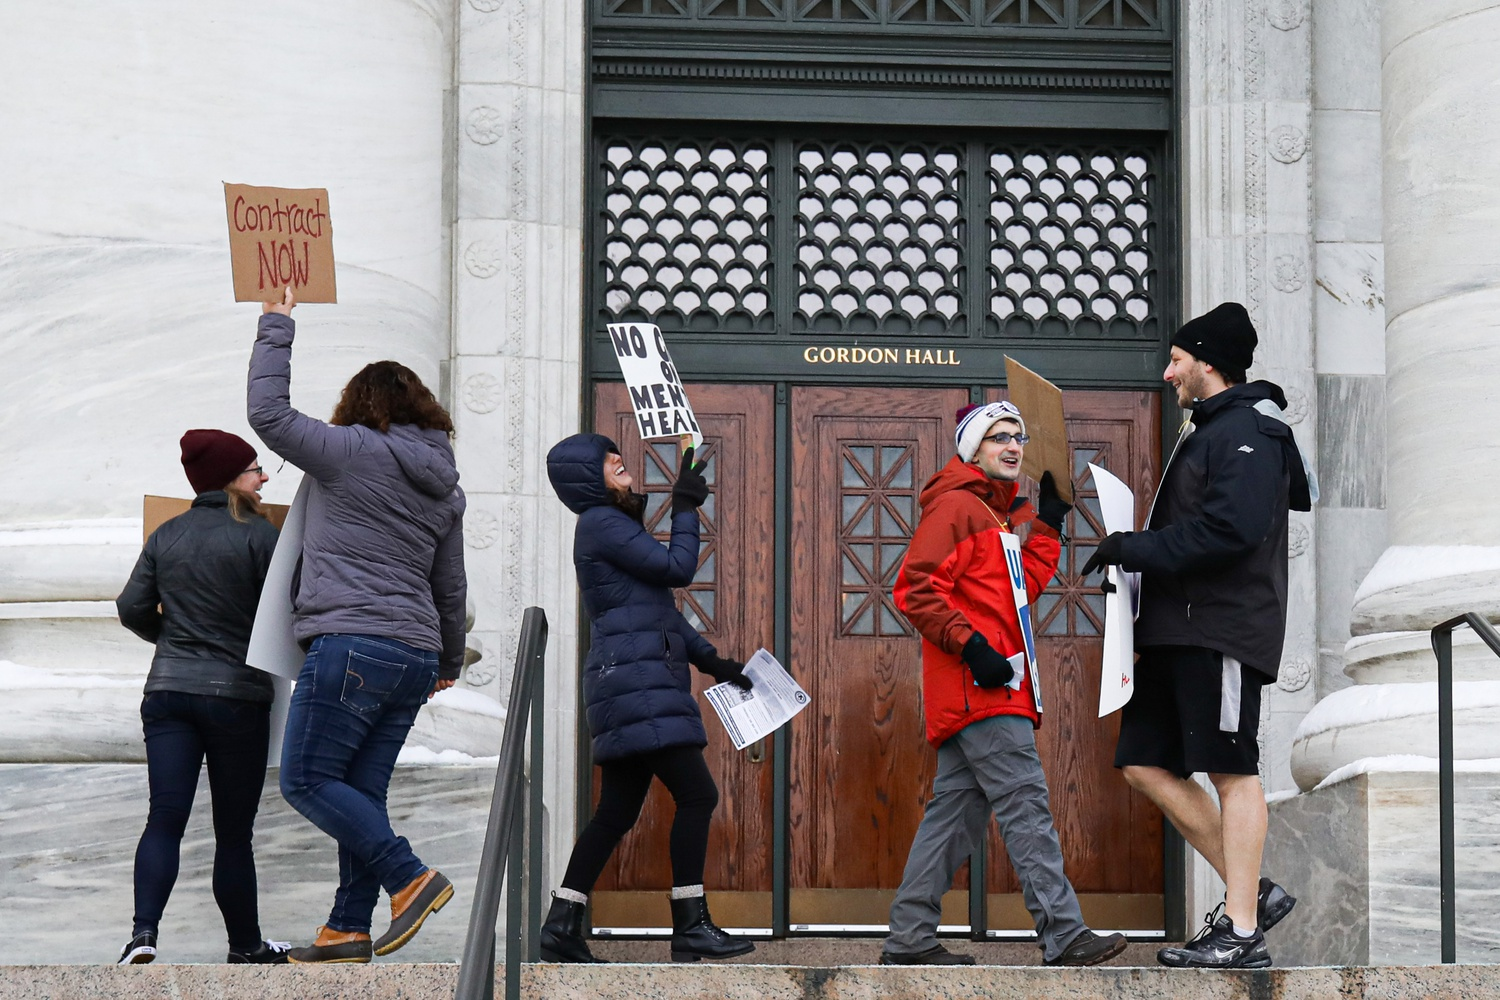 Picketers gathered outside of Gordon Hall on Harvard's Longwood campus as part of the graduate student union's strike.